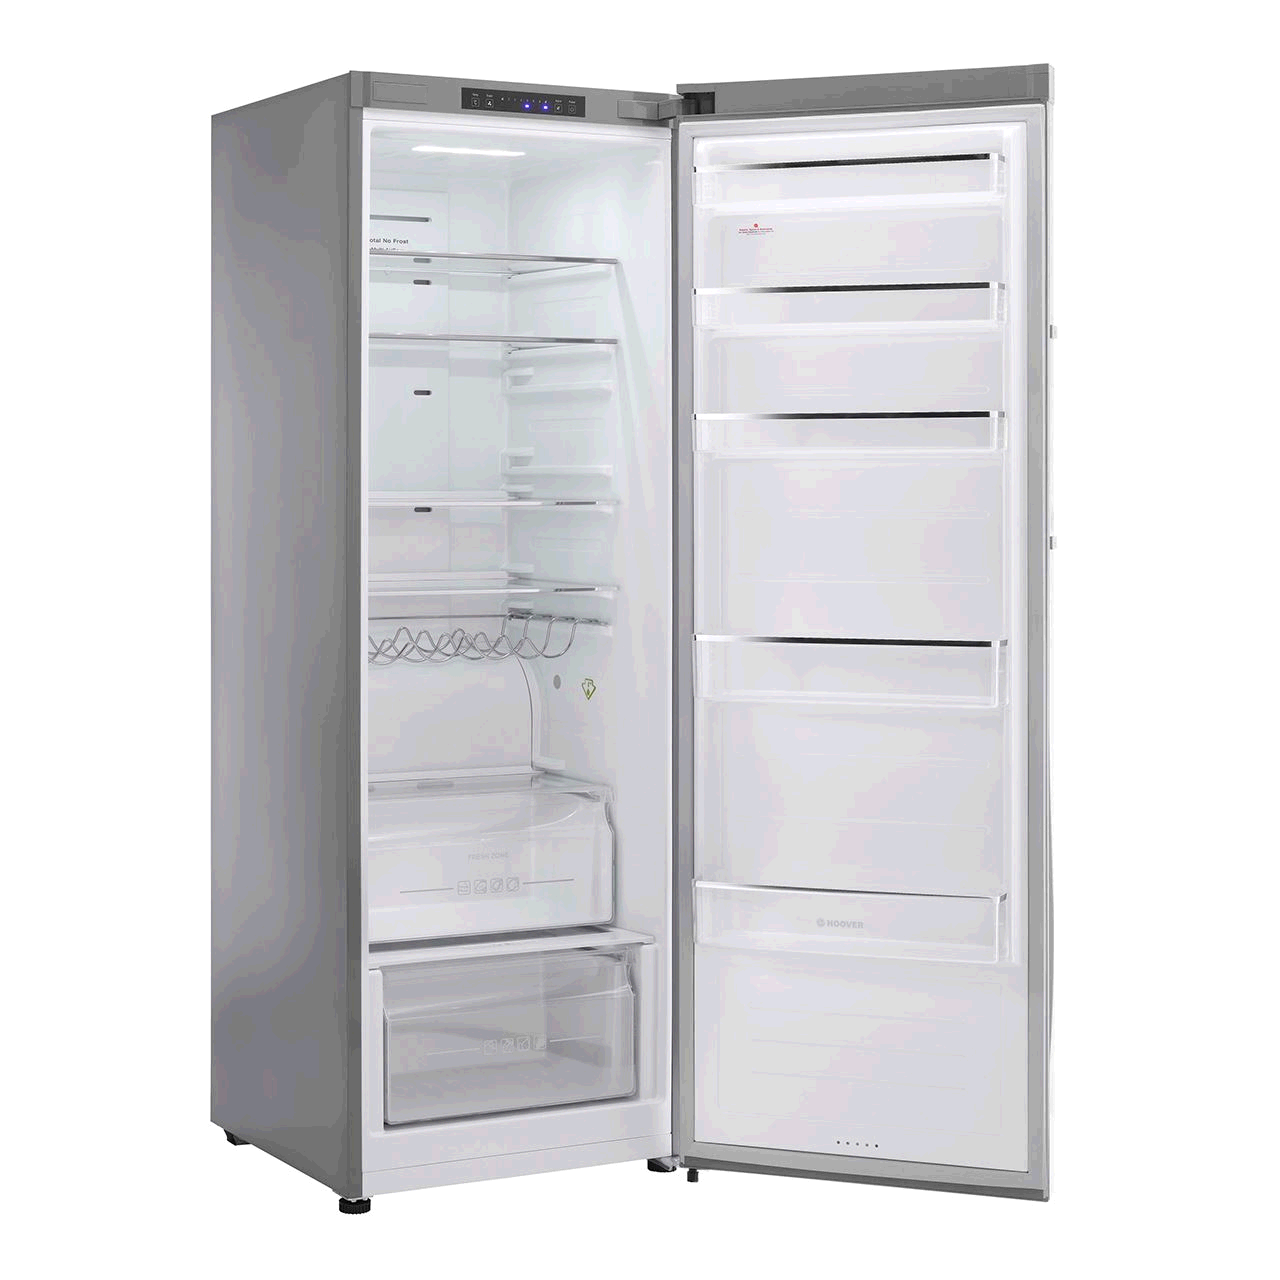 Hoover HVLN6172XH Tall Larder Fridge Stainless Steel A+ Energy H-172cm, W-60cm, D- 65cm